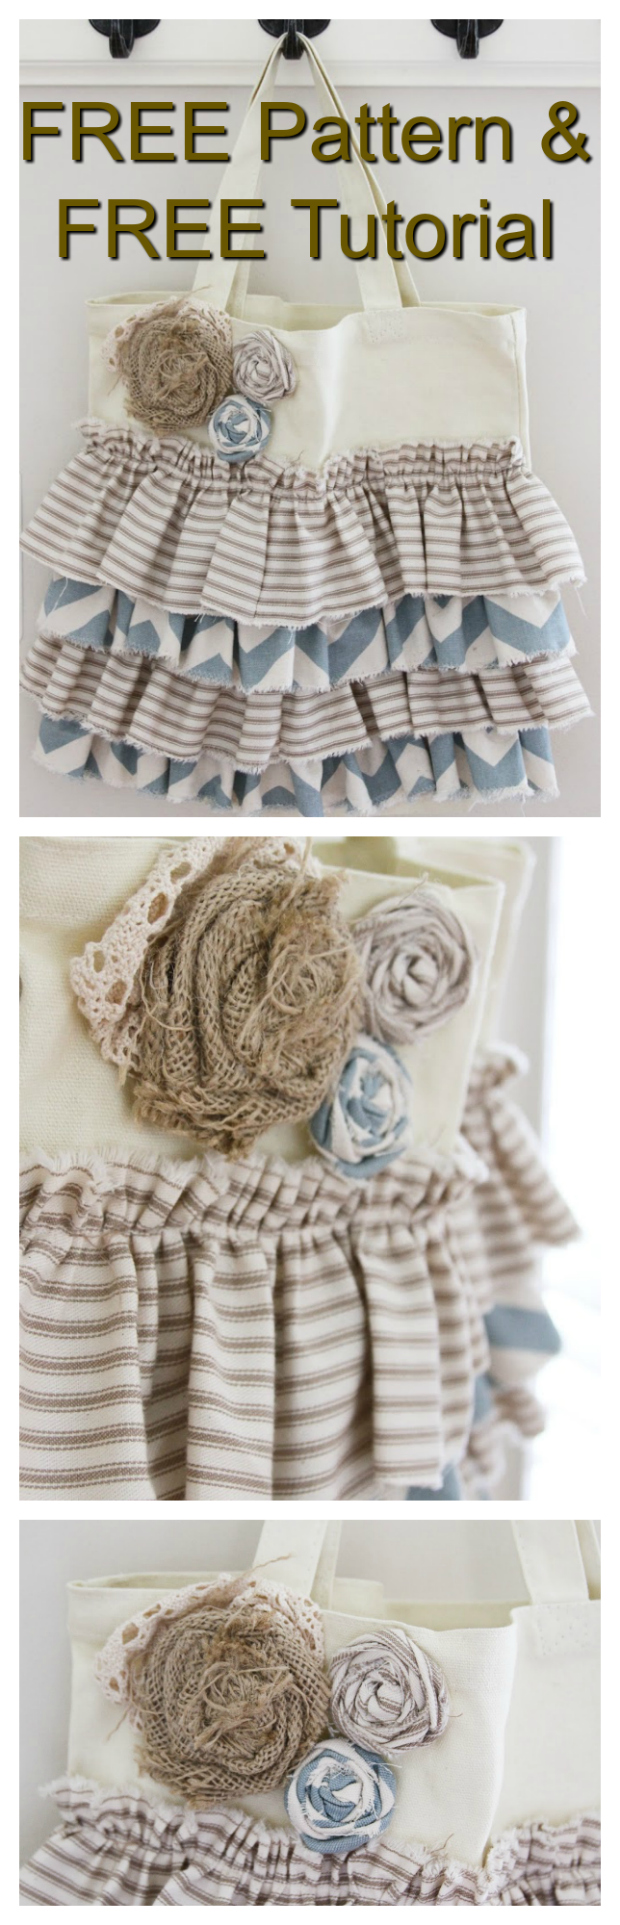 Here's a great FREE pattern and tutorial where you take a basic canvas tote bag and you add ruffles and whatever embellishments you wish to add. It's a relatively easy project to work on and you could make lots of them in a short space of time.